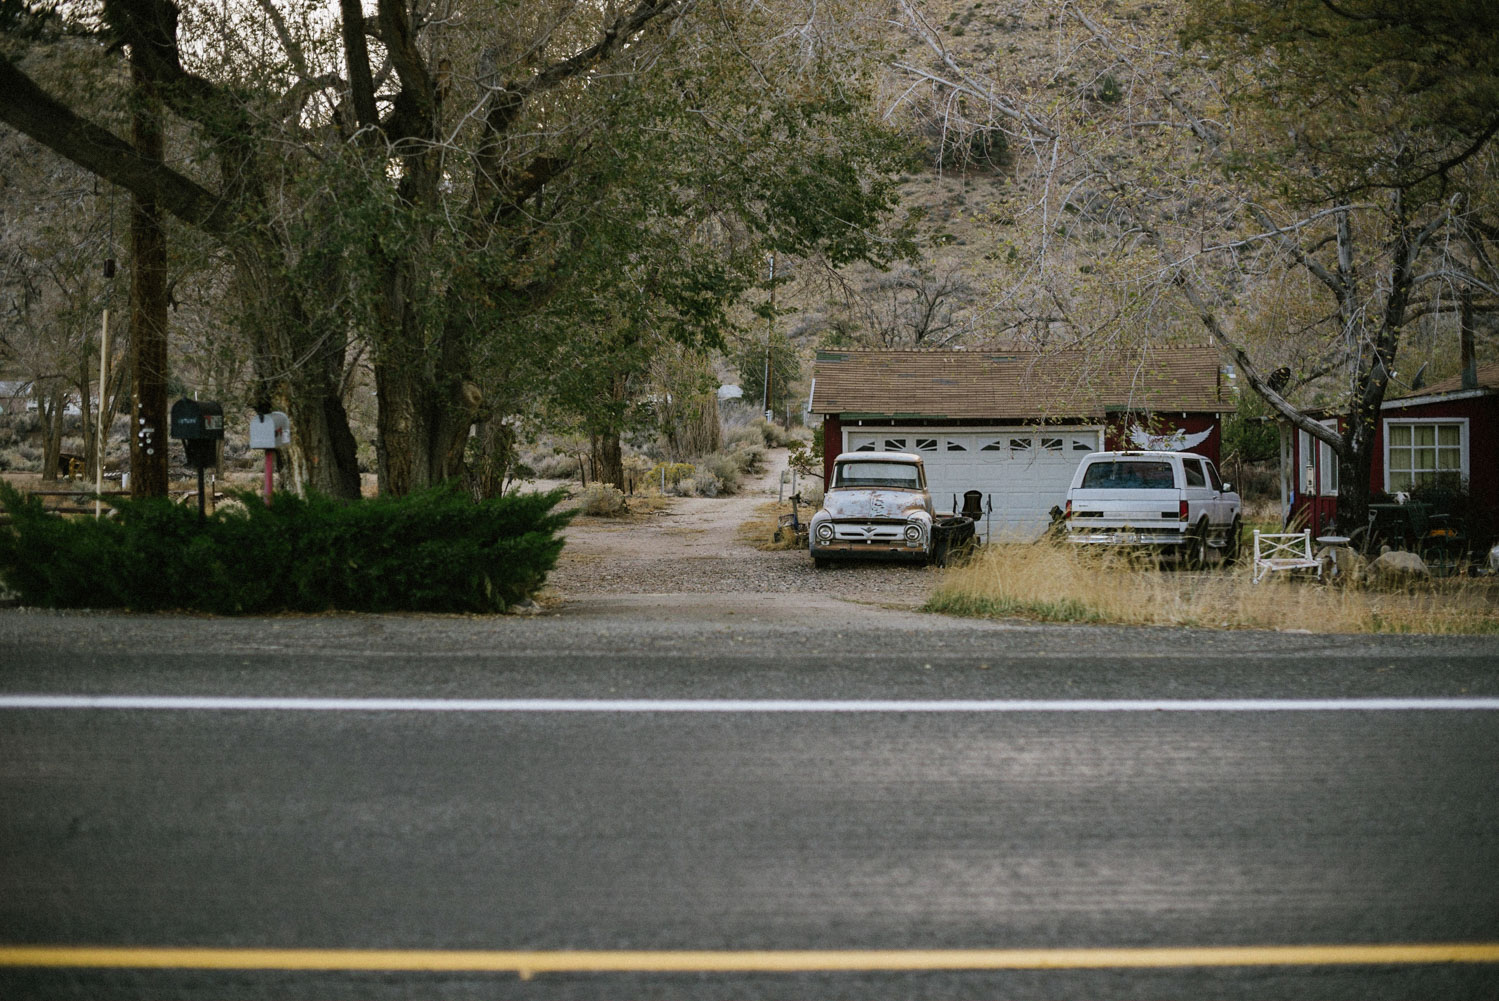 road and front yard of house in yosemite